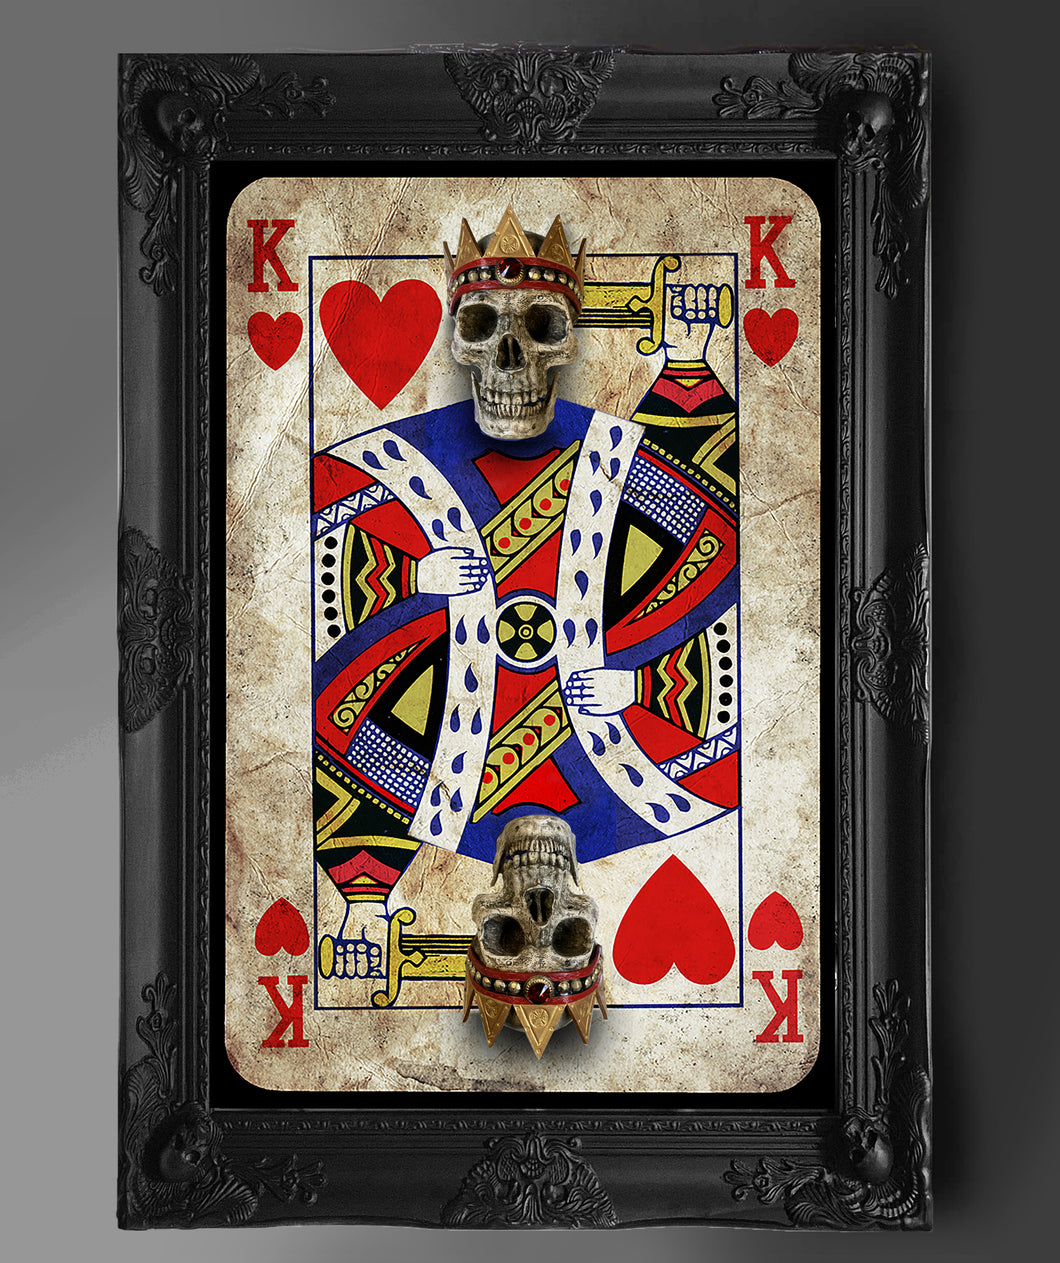 (ONLY 2 SCULPTURES LEFT) Limited Edition King of Hearts Full Card Skullpture #1-5